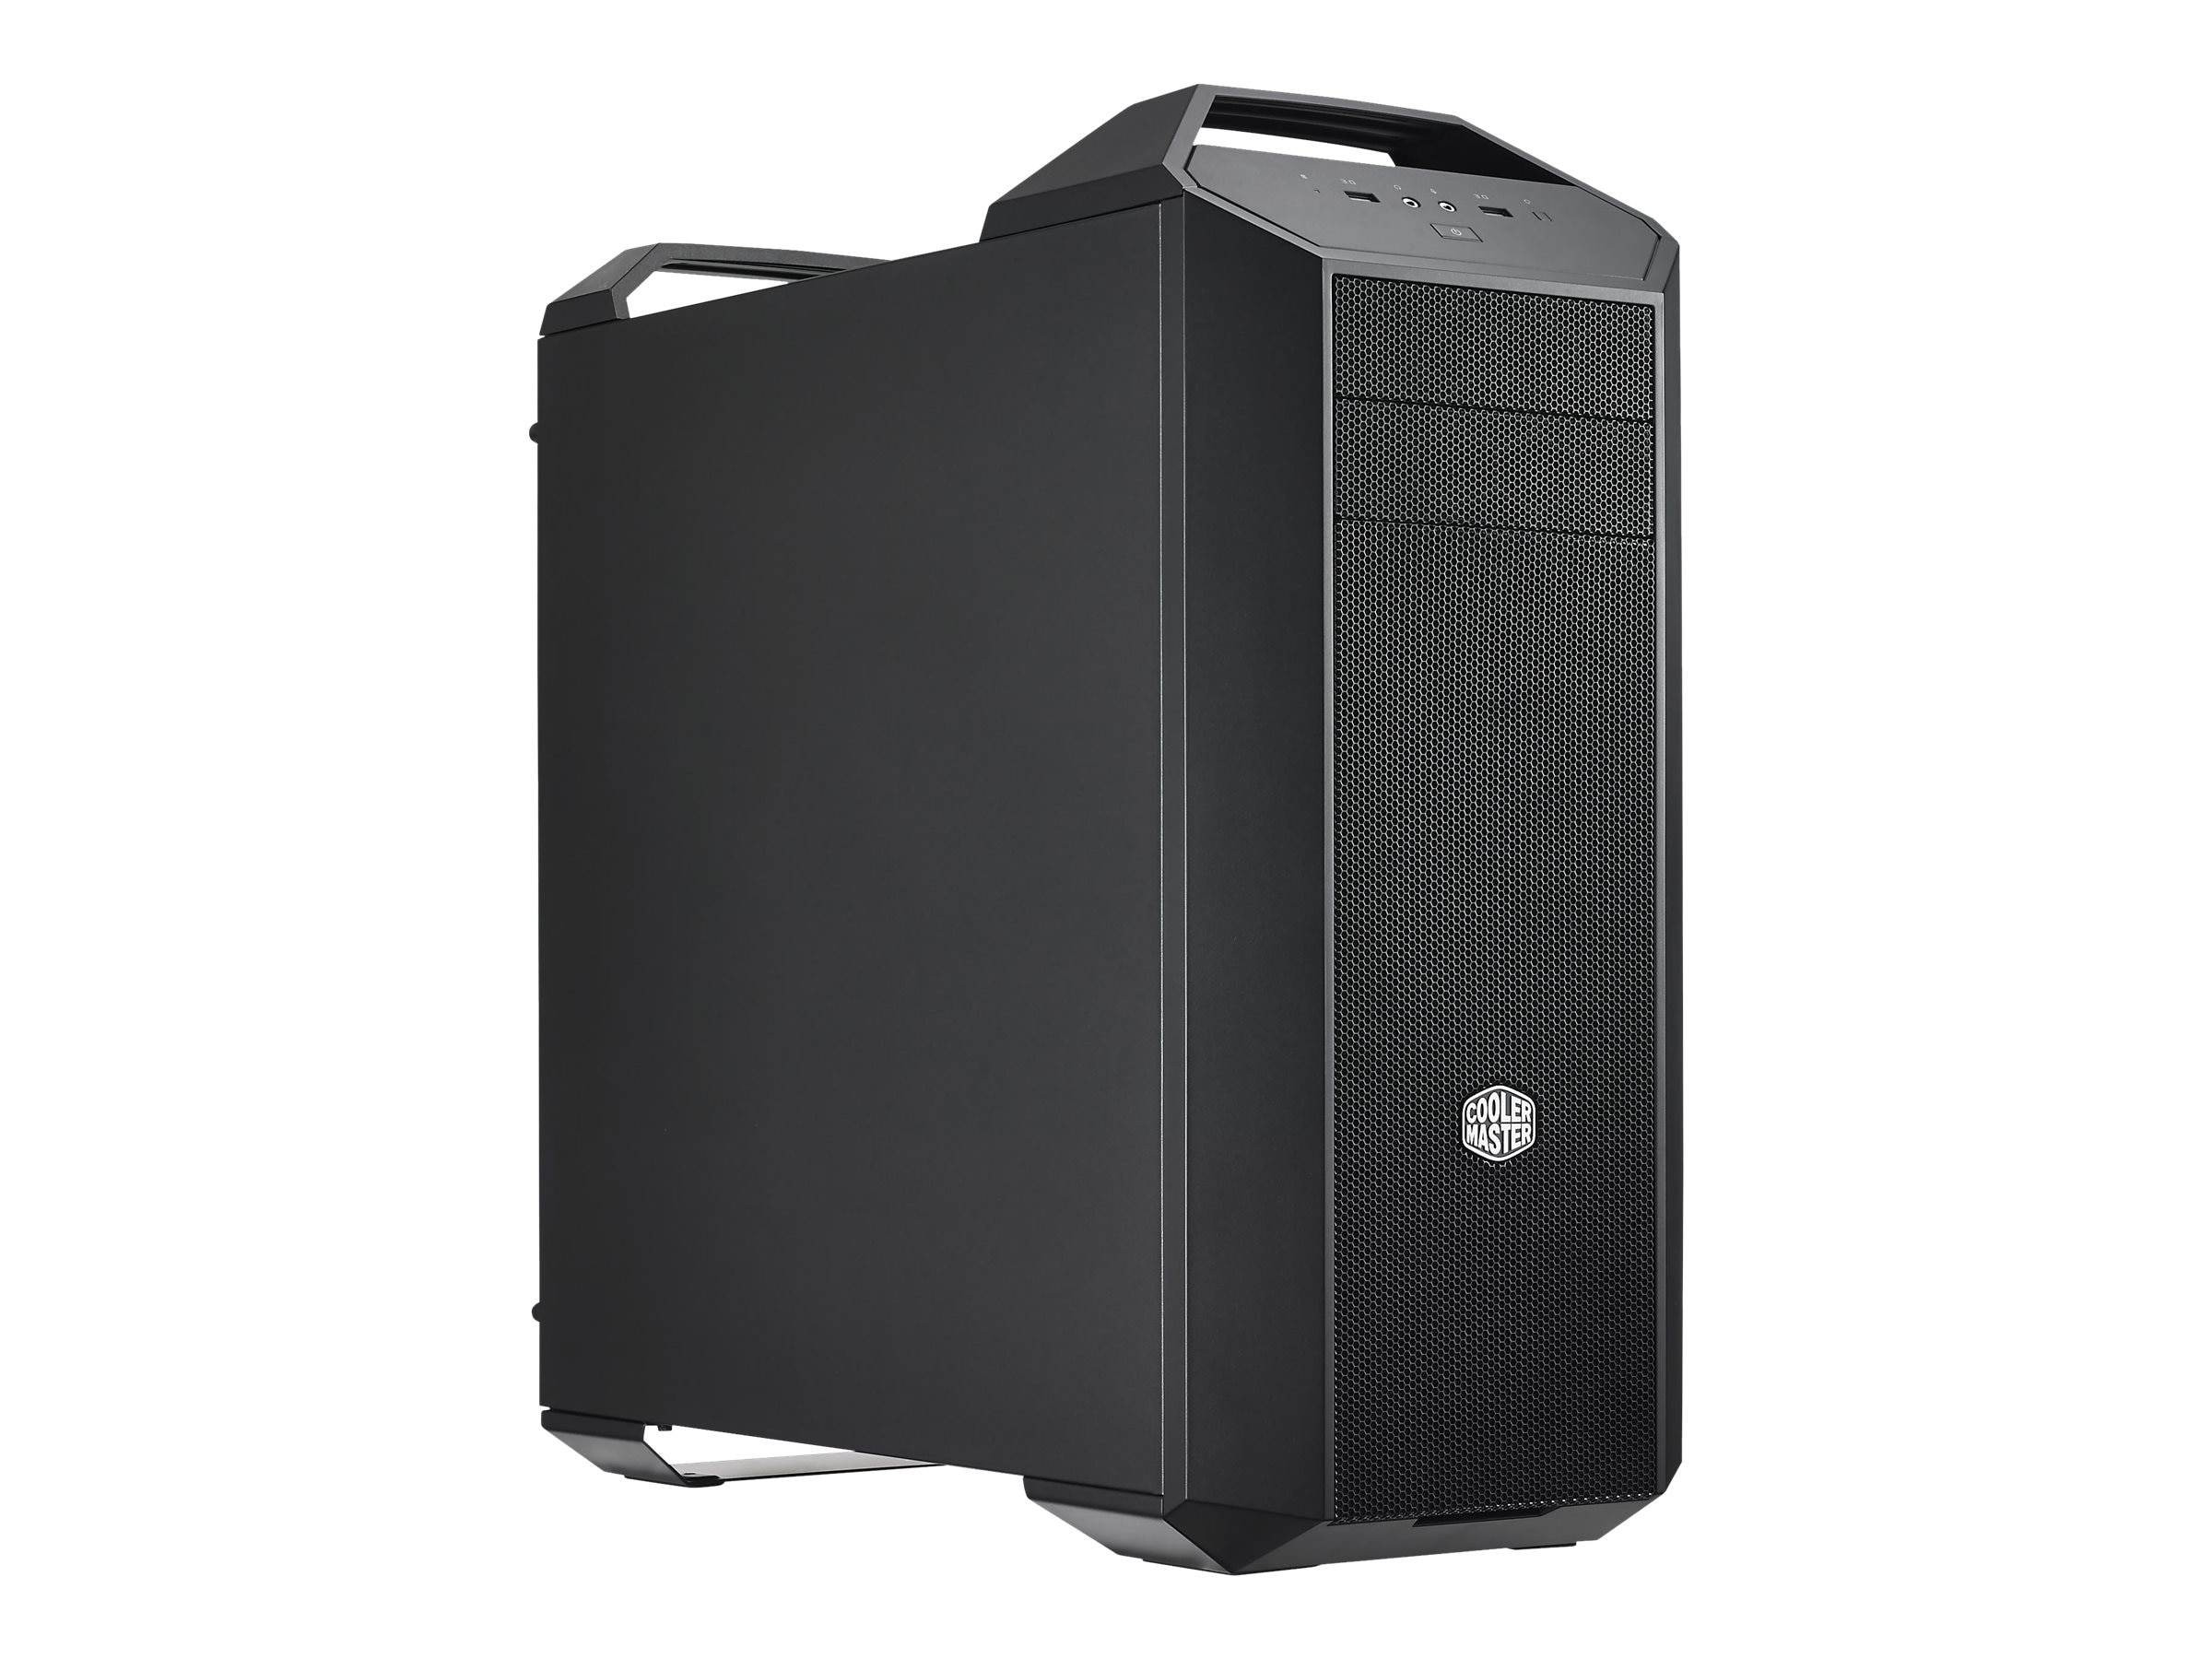 Cooler Master Chassis, MasterCase 5, MCX-0005-KKN00, 28025066, Cases - Systems/Servers